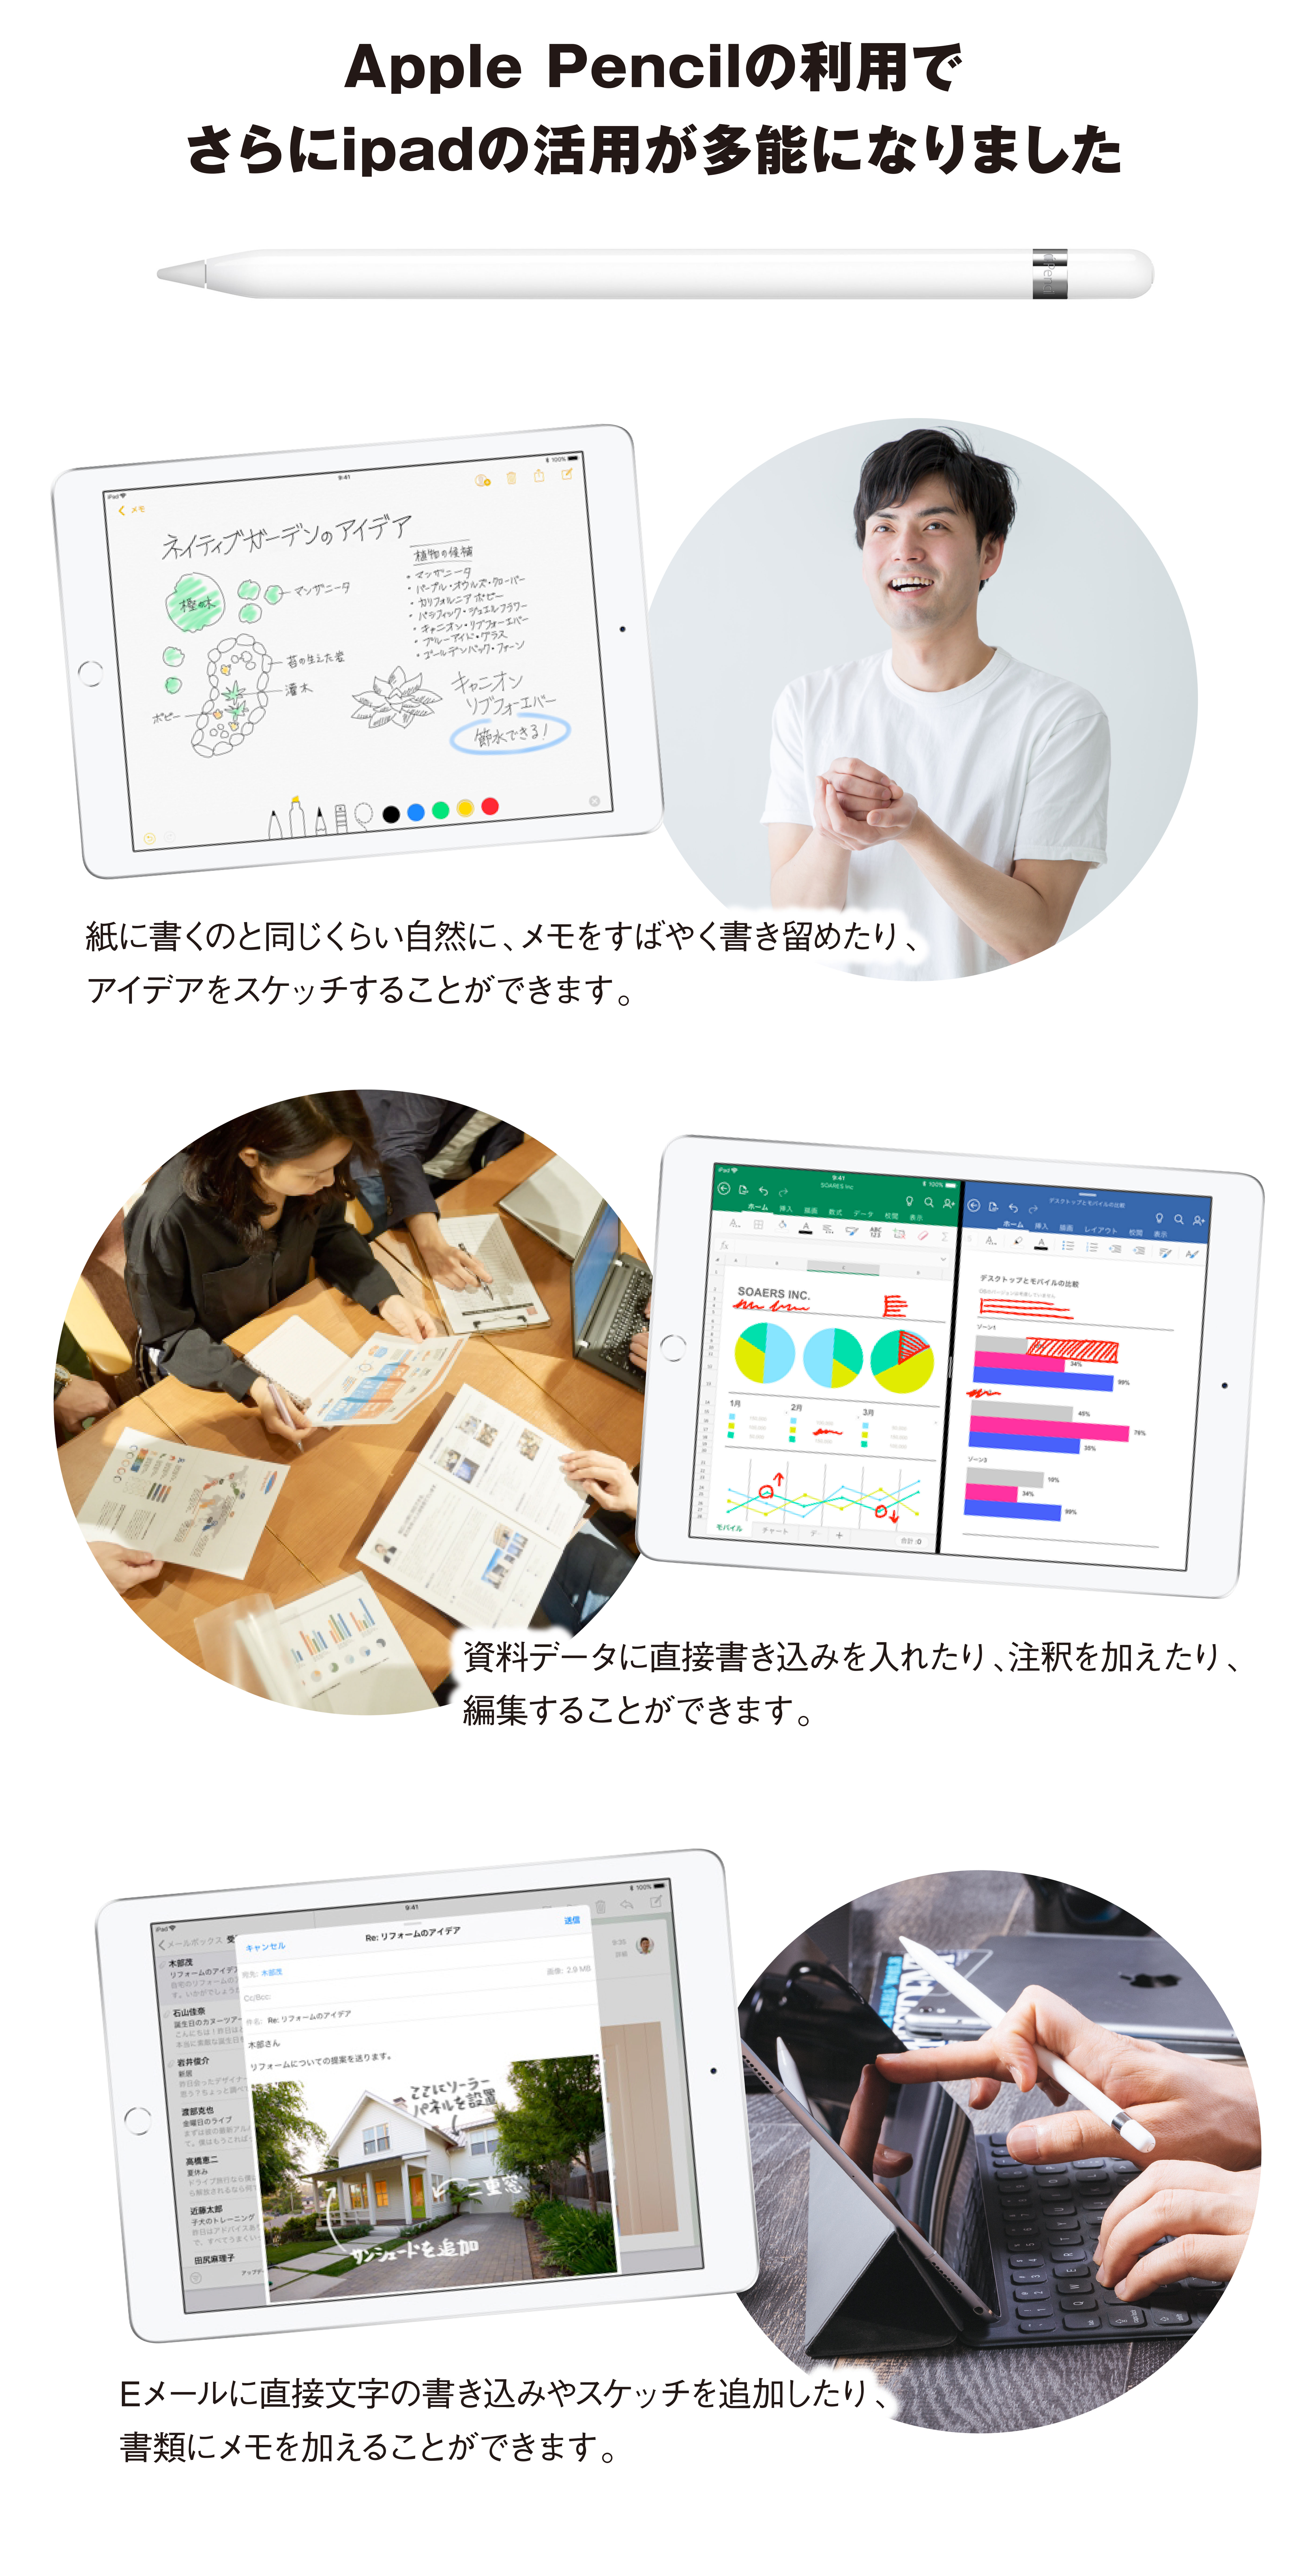 apple pencil 特集01